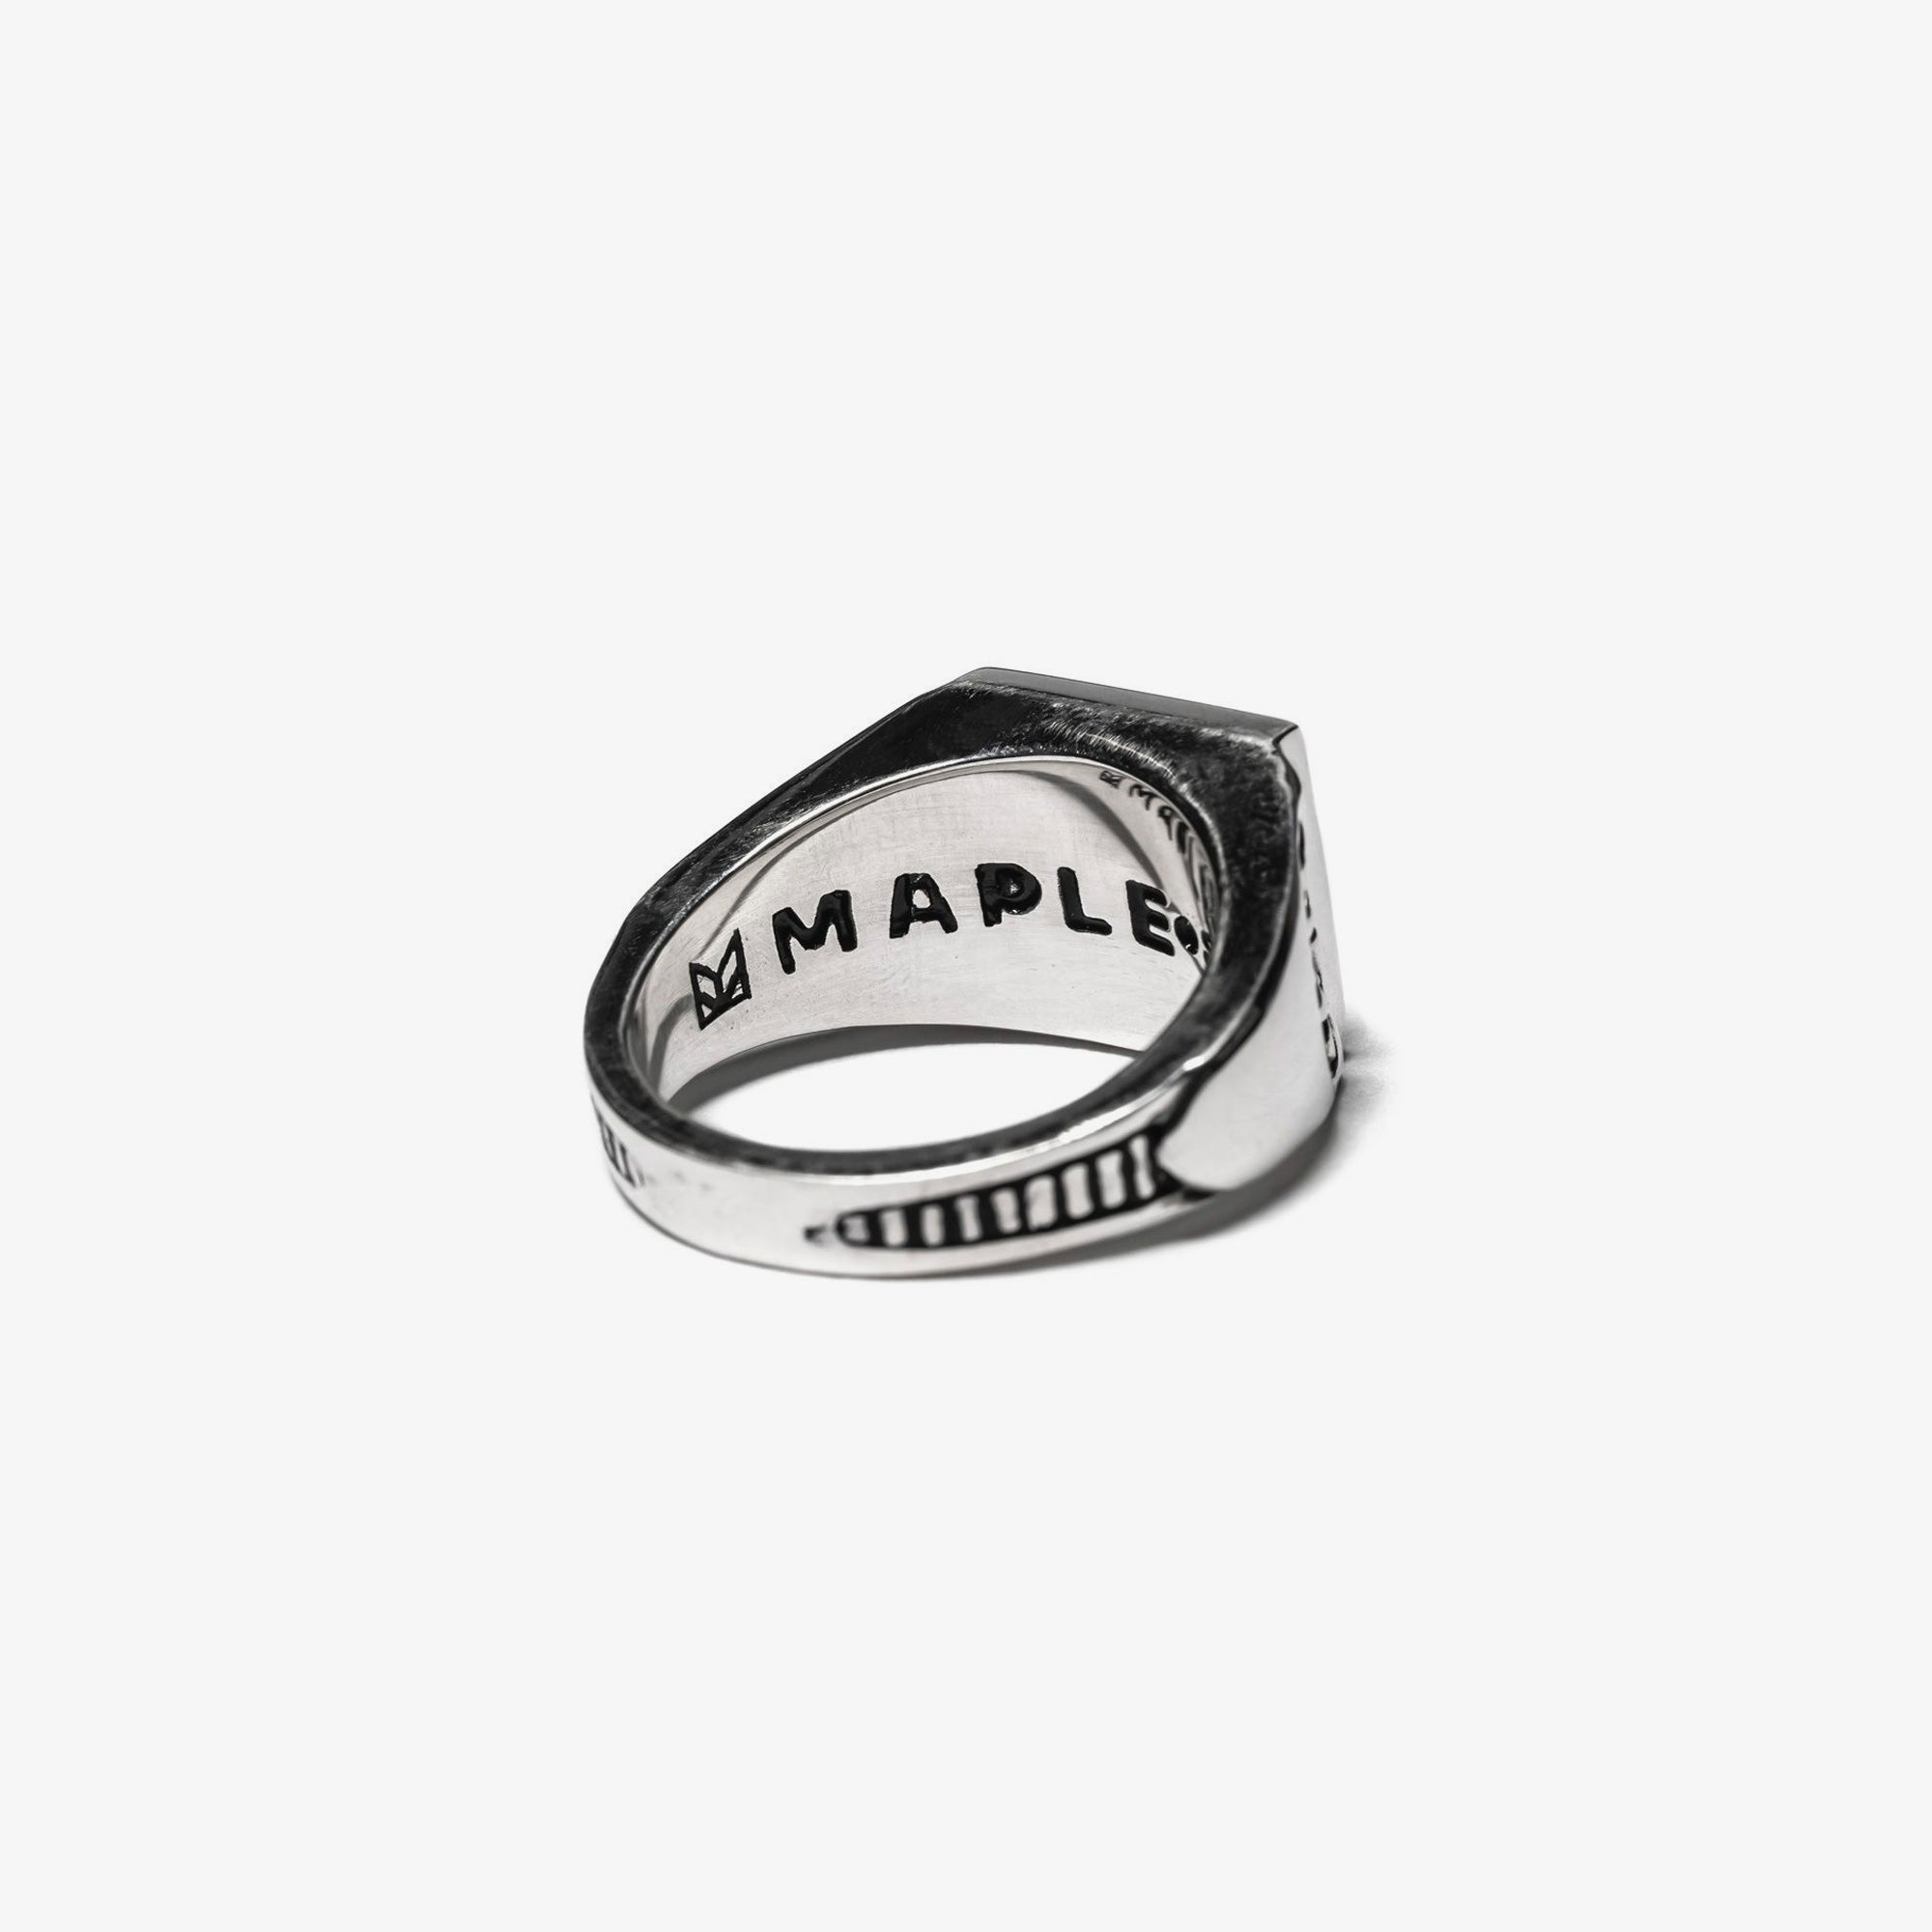 Maple Collegiate Ring Blank - Mother of Pearl / Silver 925 3